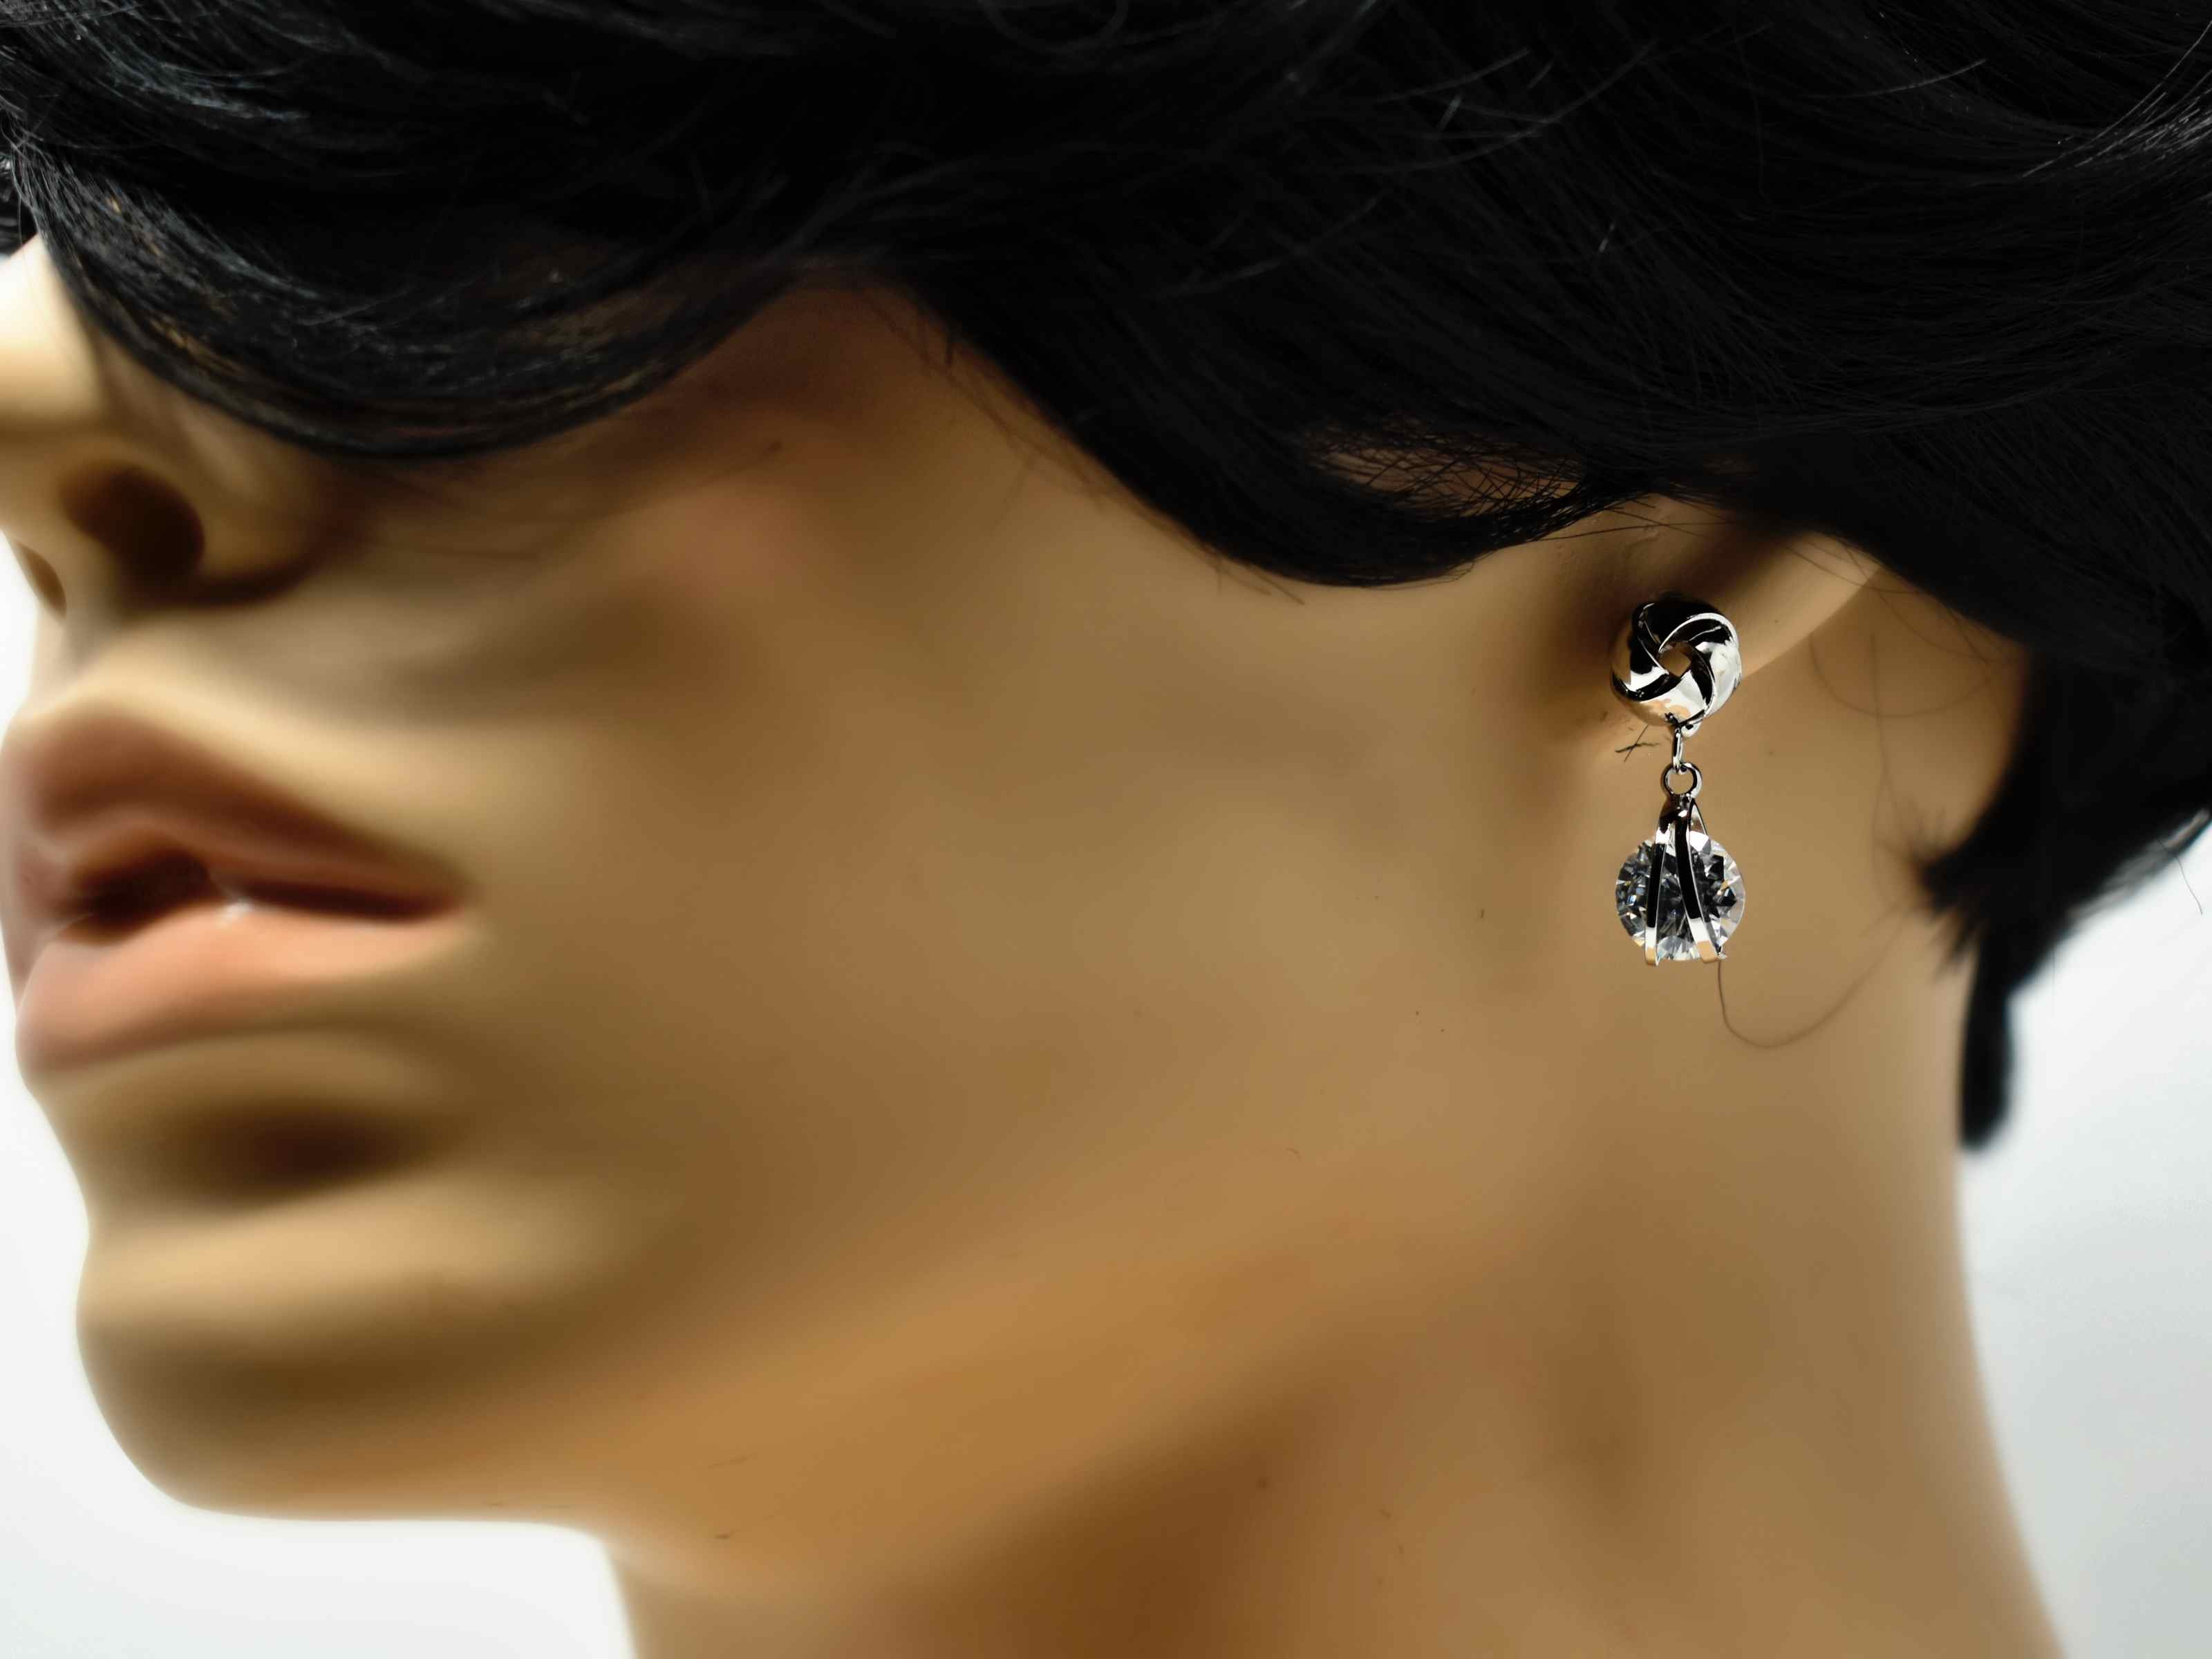 Our Erica earrings are so delicate and chic! These little silver beauties are the perfect knob chandelier earrings with a knot design and a drop dangle stone. It has a push back clasp and is 1 inch in length.